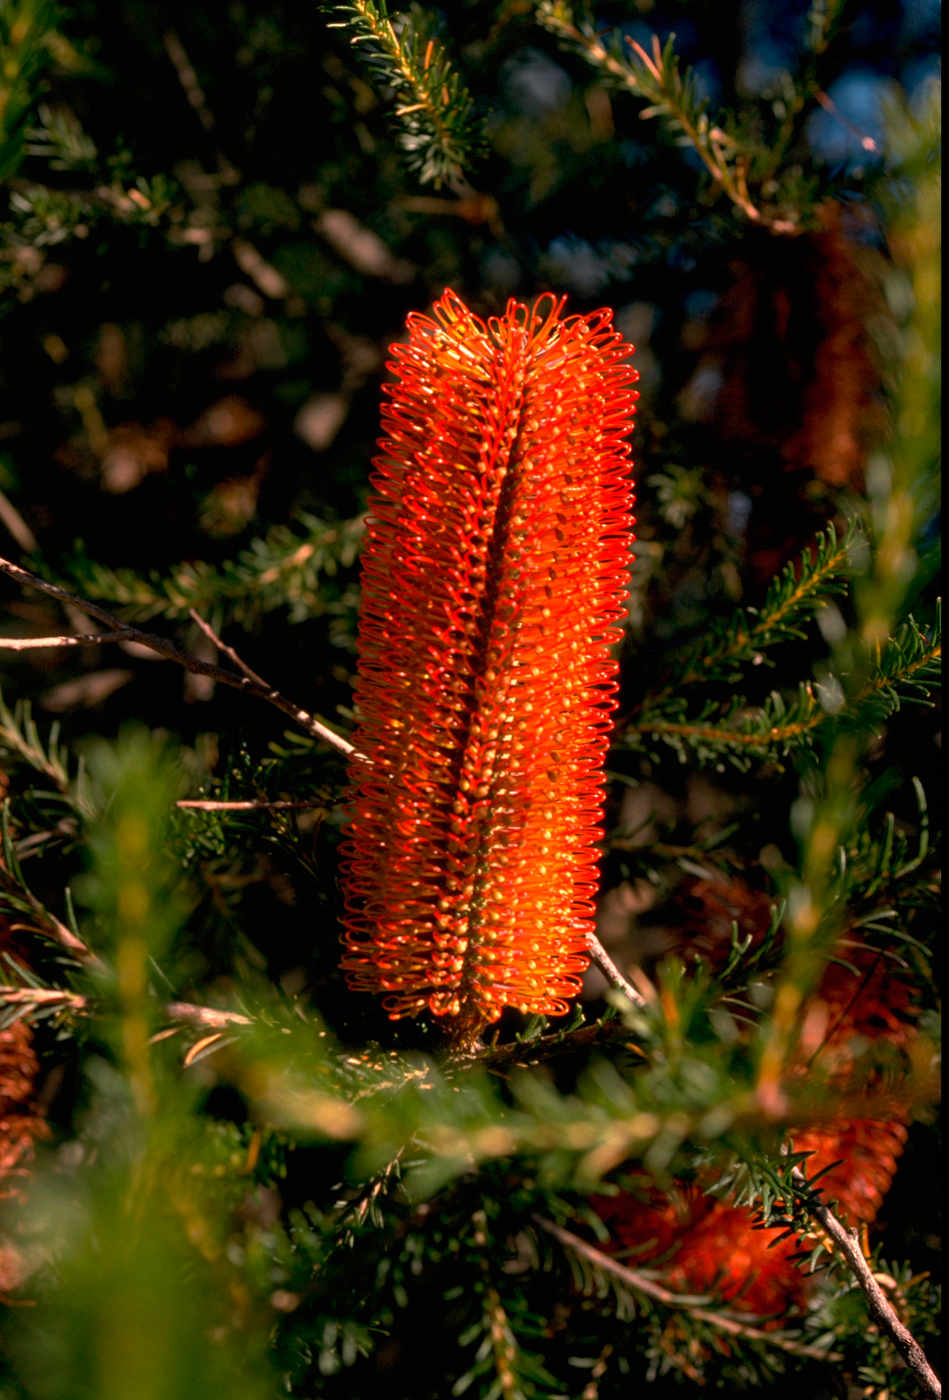 Colour photo of a bright red bottle brush flower. - click to view larger image